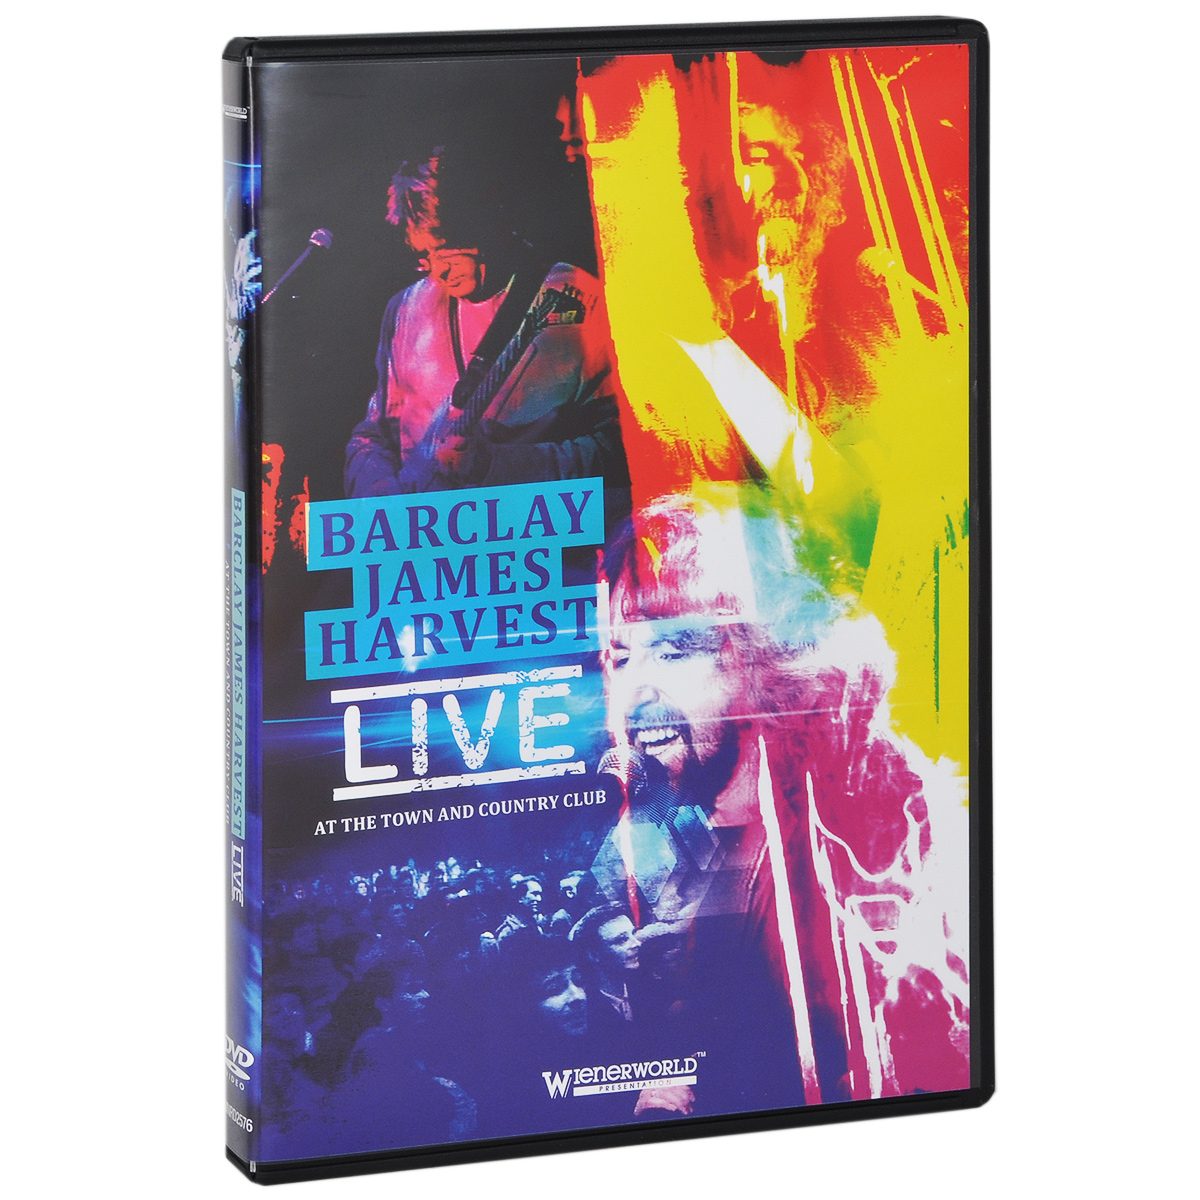 Barclay James Harvest: Live classic rock heroes live